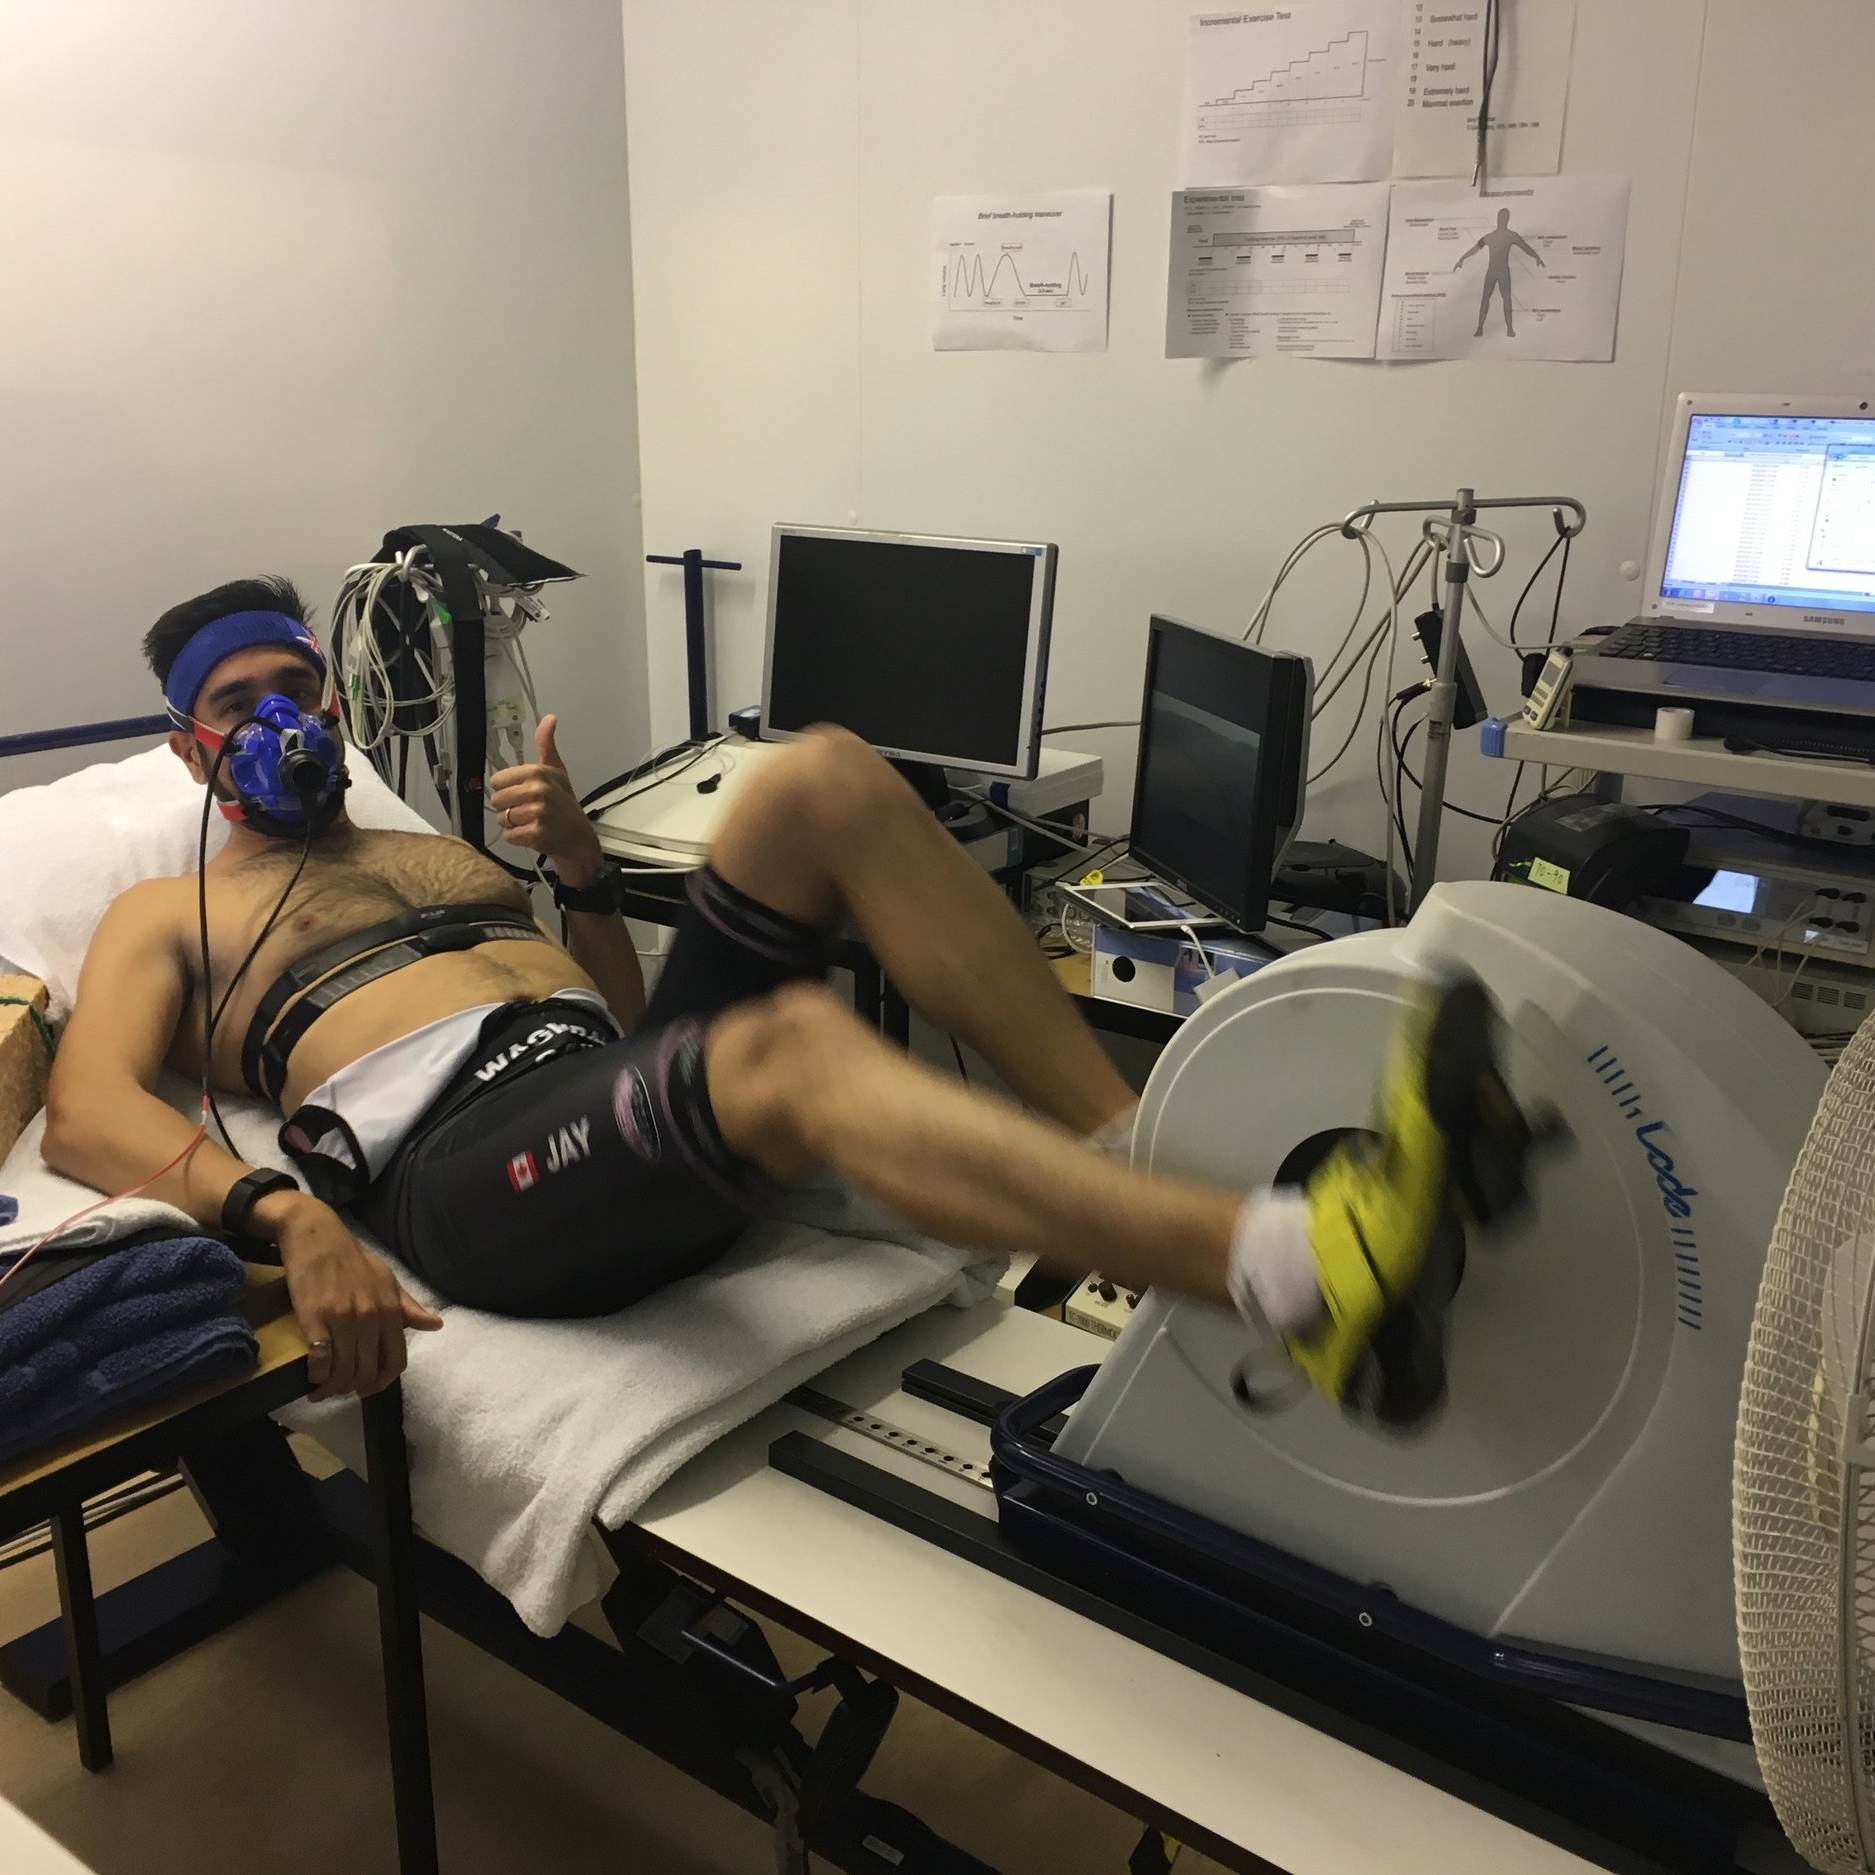 A recumbent bike was used for this test – with Jay sporting his #CRTpink custom trisuit